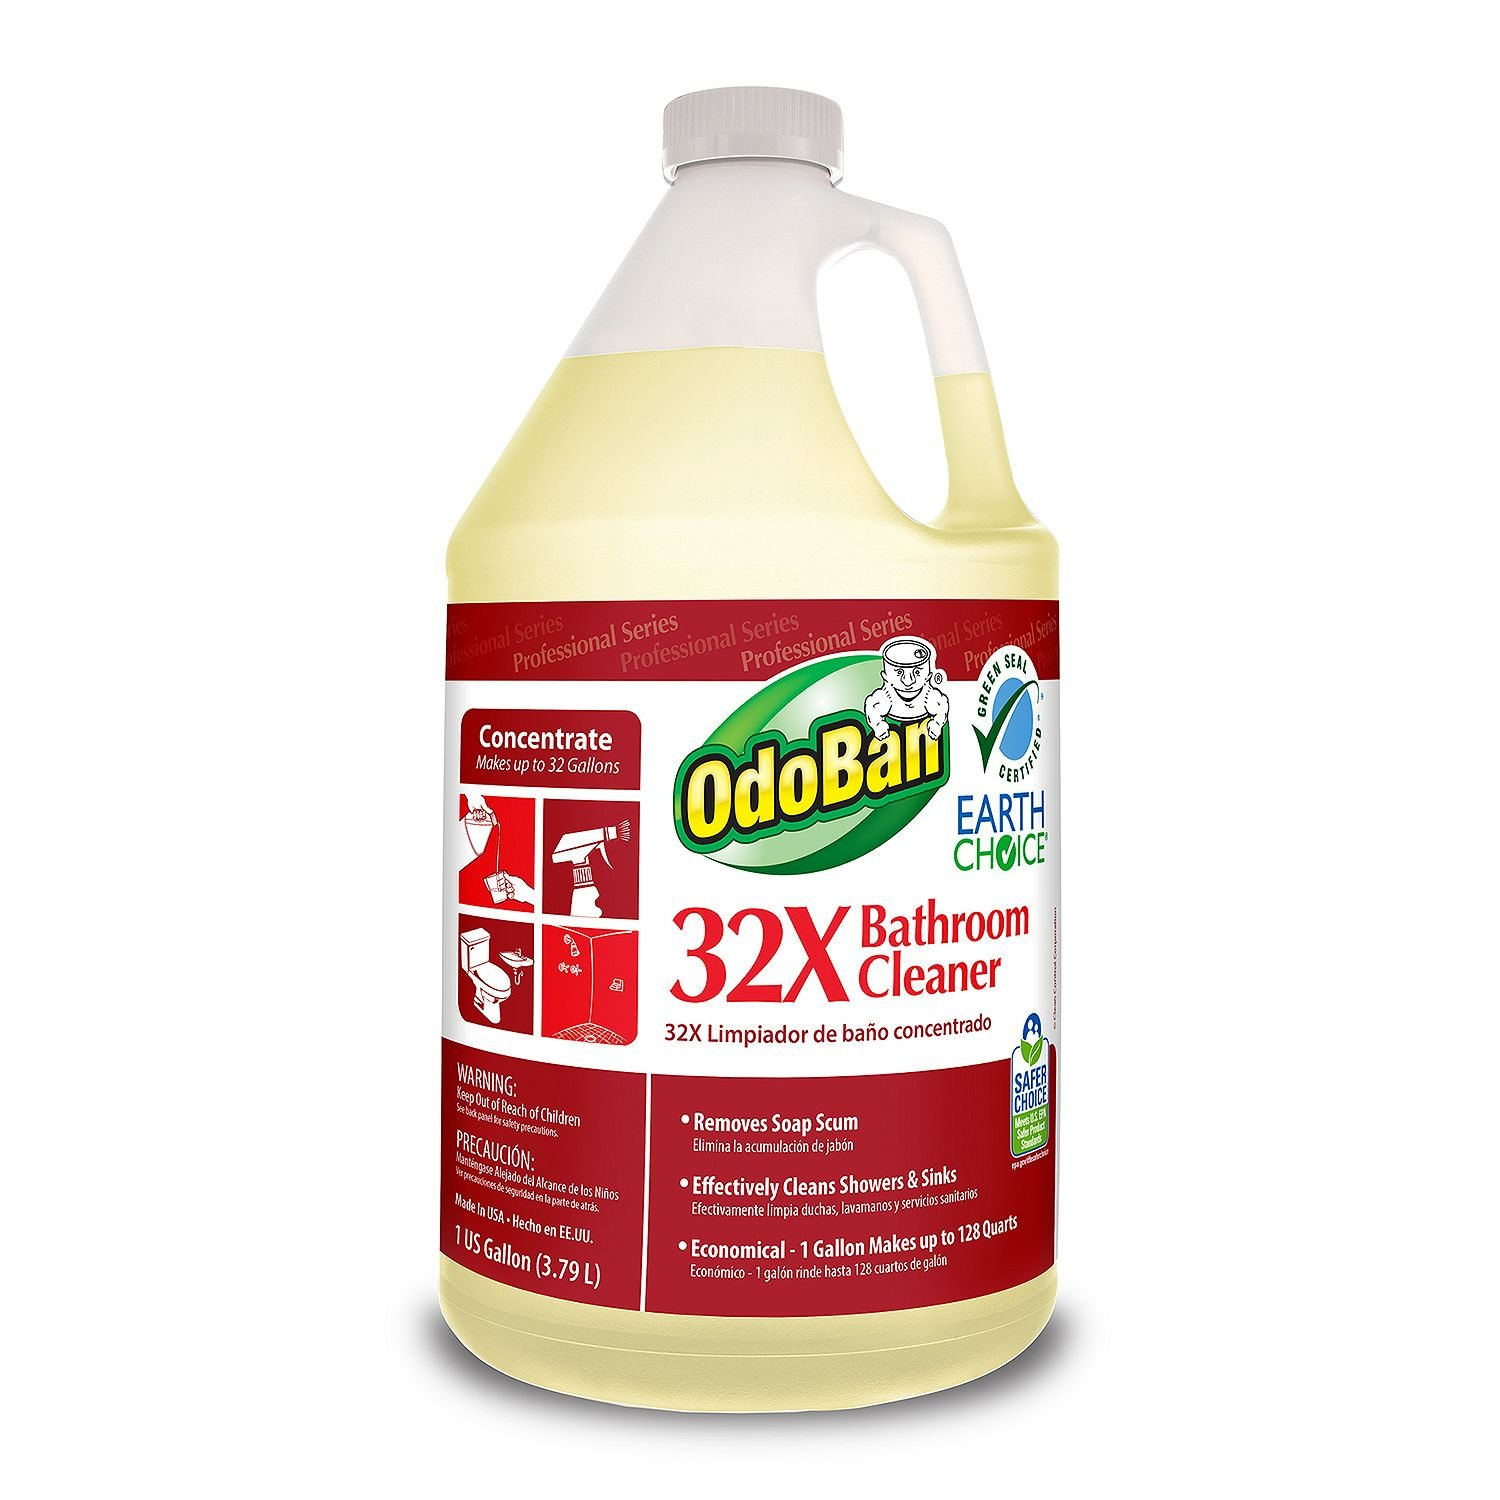 Amazon.com : OdoBan Earth Choice 32X Bathroom Cleaner Concentrate (1 gal.) - (Original from manufacturer - Bulk Discount available) : Grocery & Gourmet Food